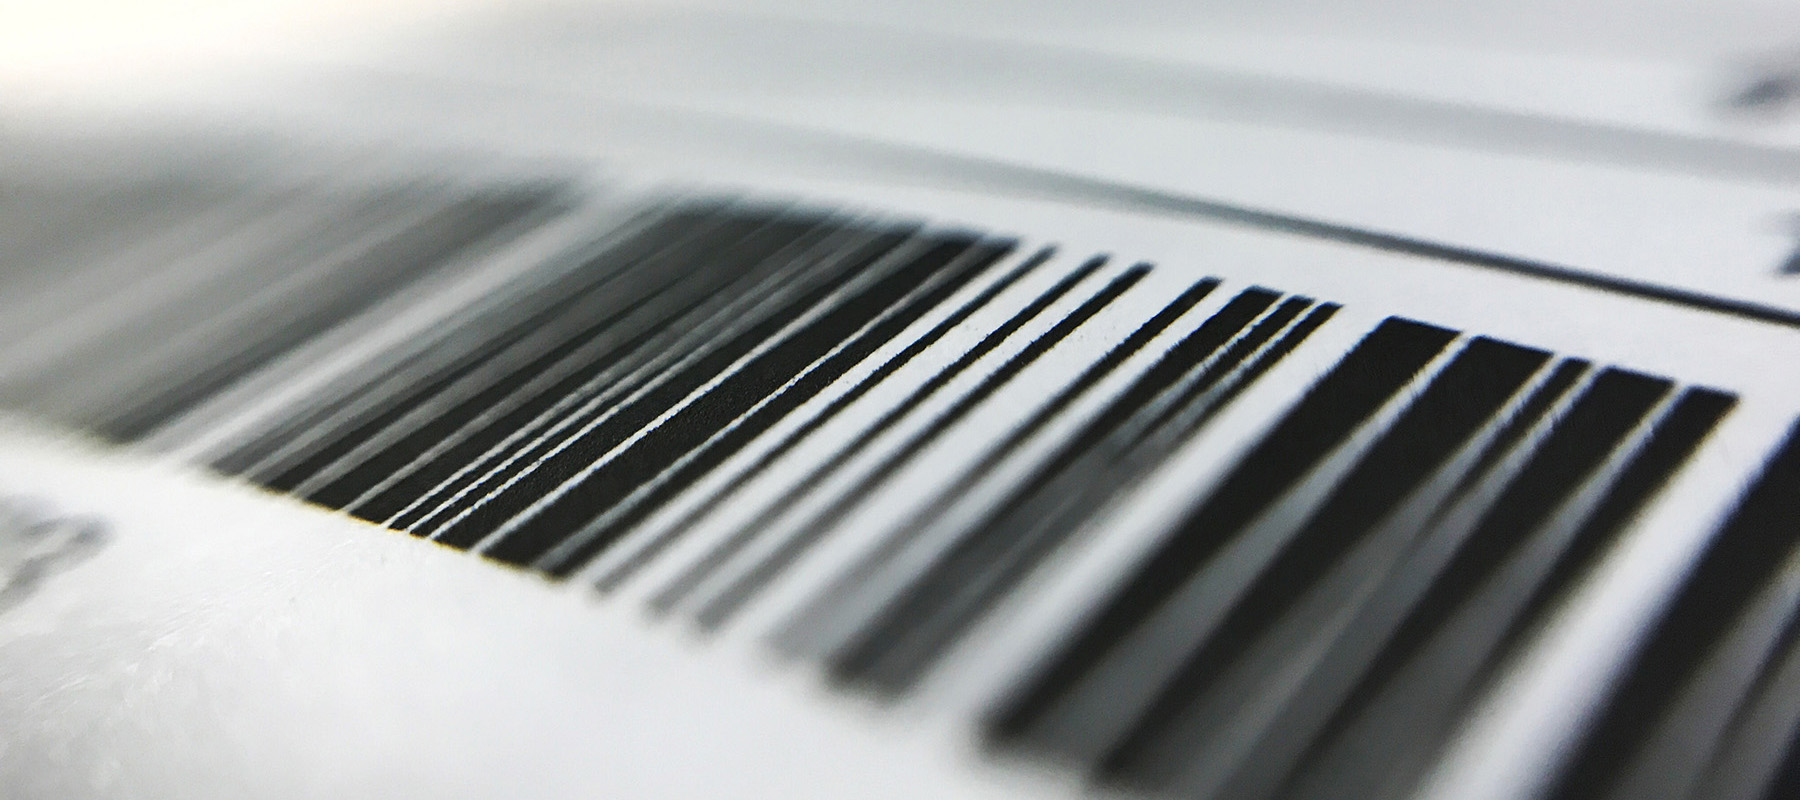 Image of a product barcode with thick and thin straight black lines on an off-white background